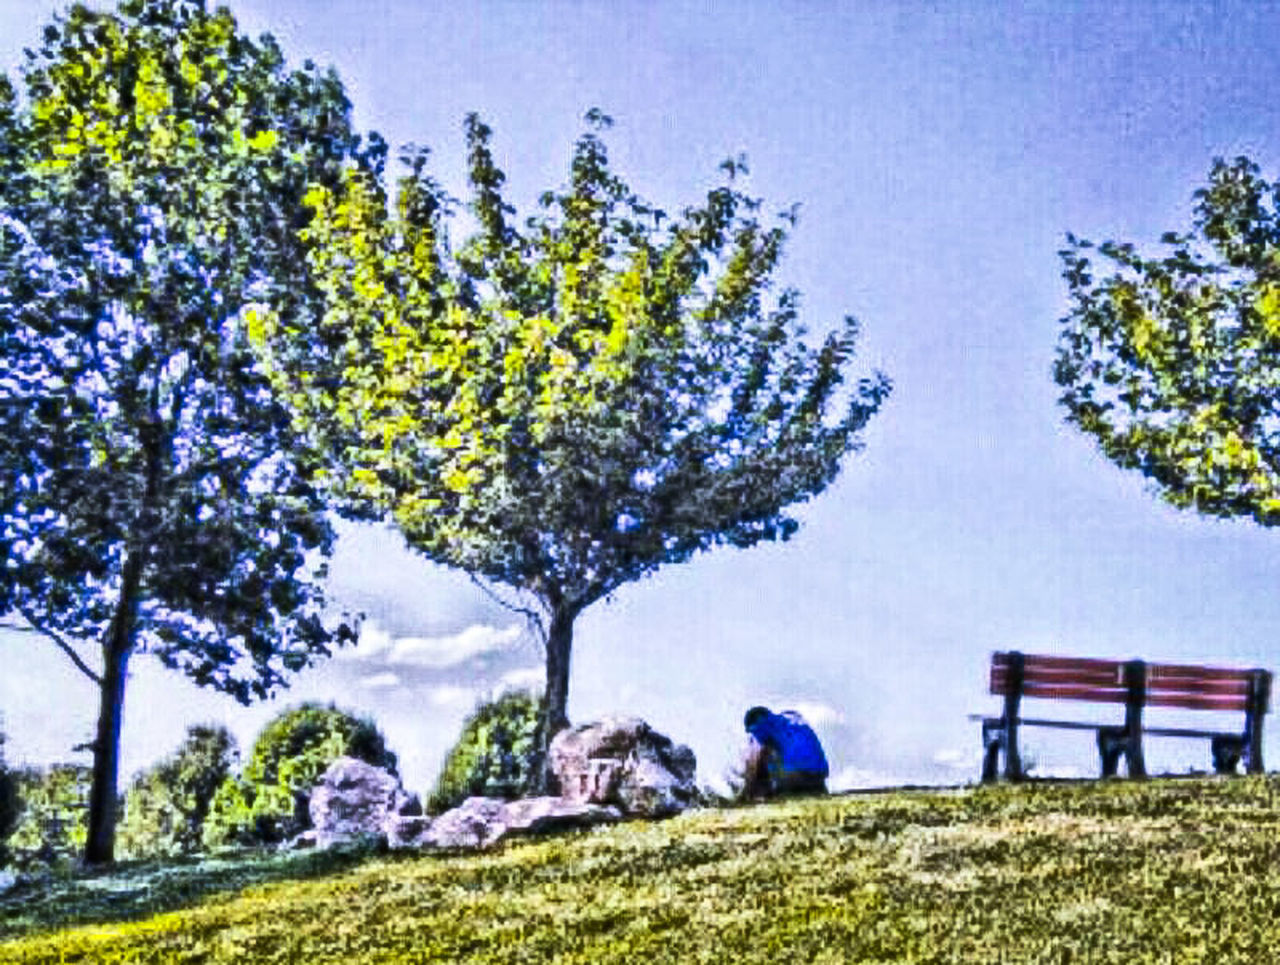 Lonely young man..lonely bench..surrounded by abundance, life & beauty.. Eyeem Trending Popular Showcase July TRENDING  EyeEm USA  Landscape Fresh On Eyeem  New On Eyeem New On Market EyeEm Gallery Market Bestsellers June 2016 EyeEm Nature Lover Hdr Collections HDR Hdr Photography EyeEm Best Shots - Nature God's Creation God's Art Landscapes Best Selling Eyeem Market Park Bench Man Street Photography EyeEm Week